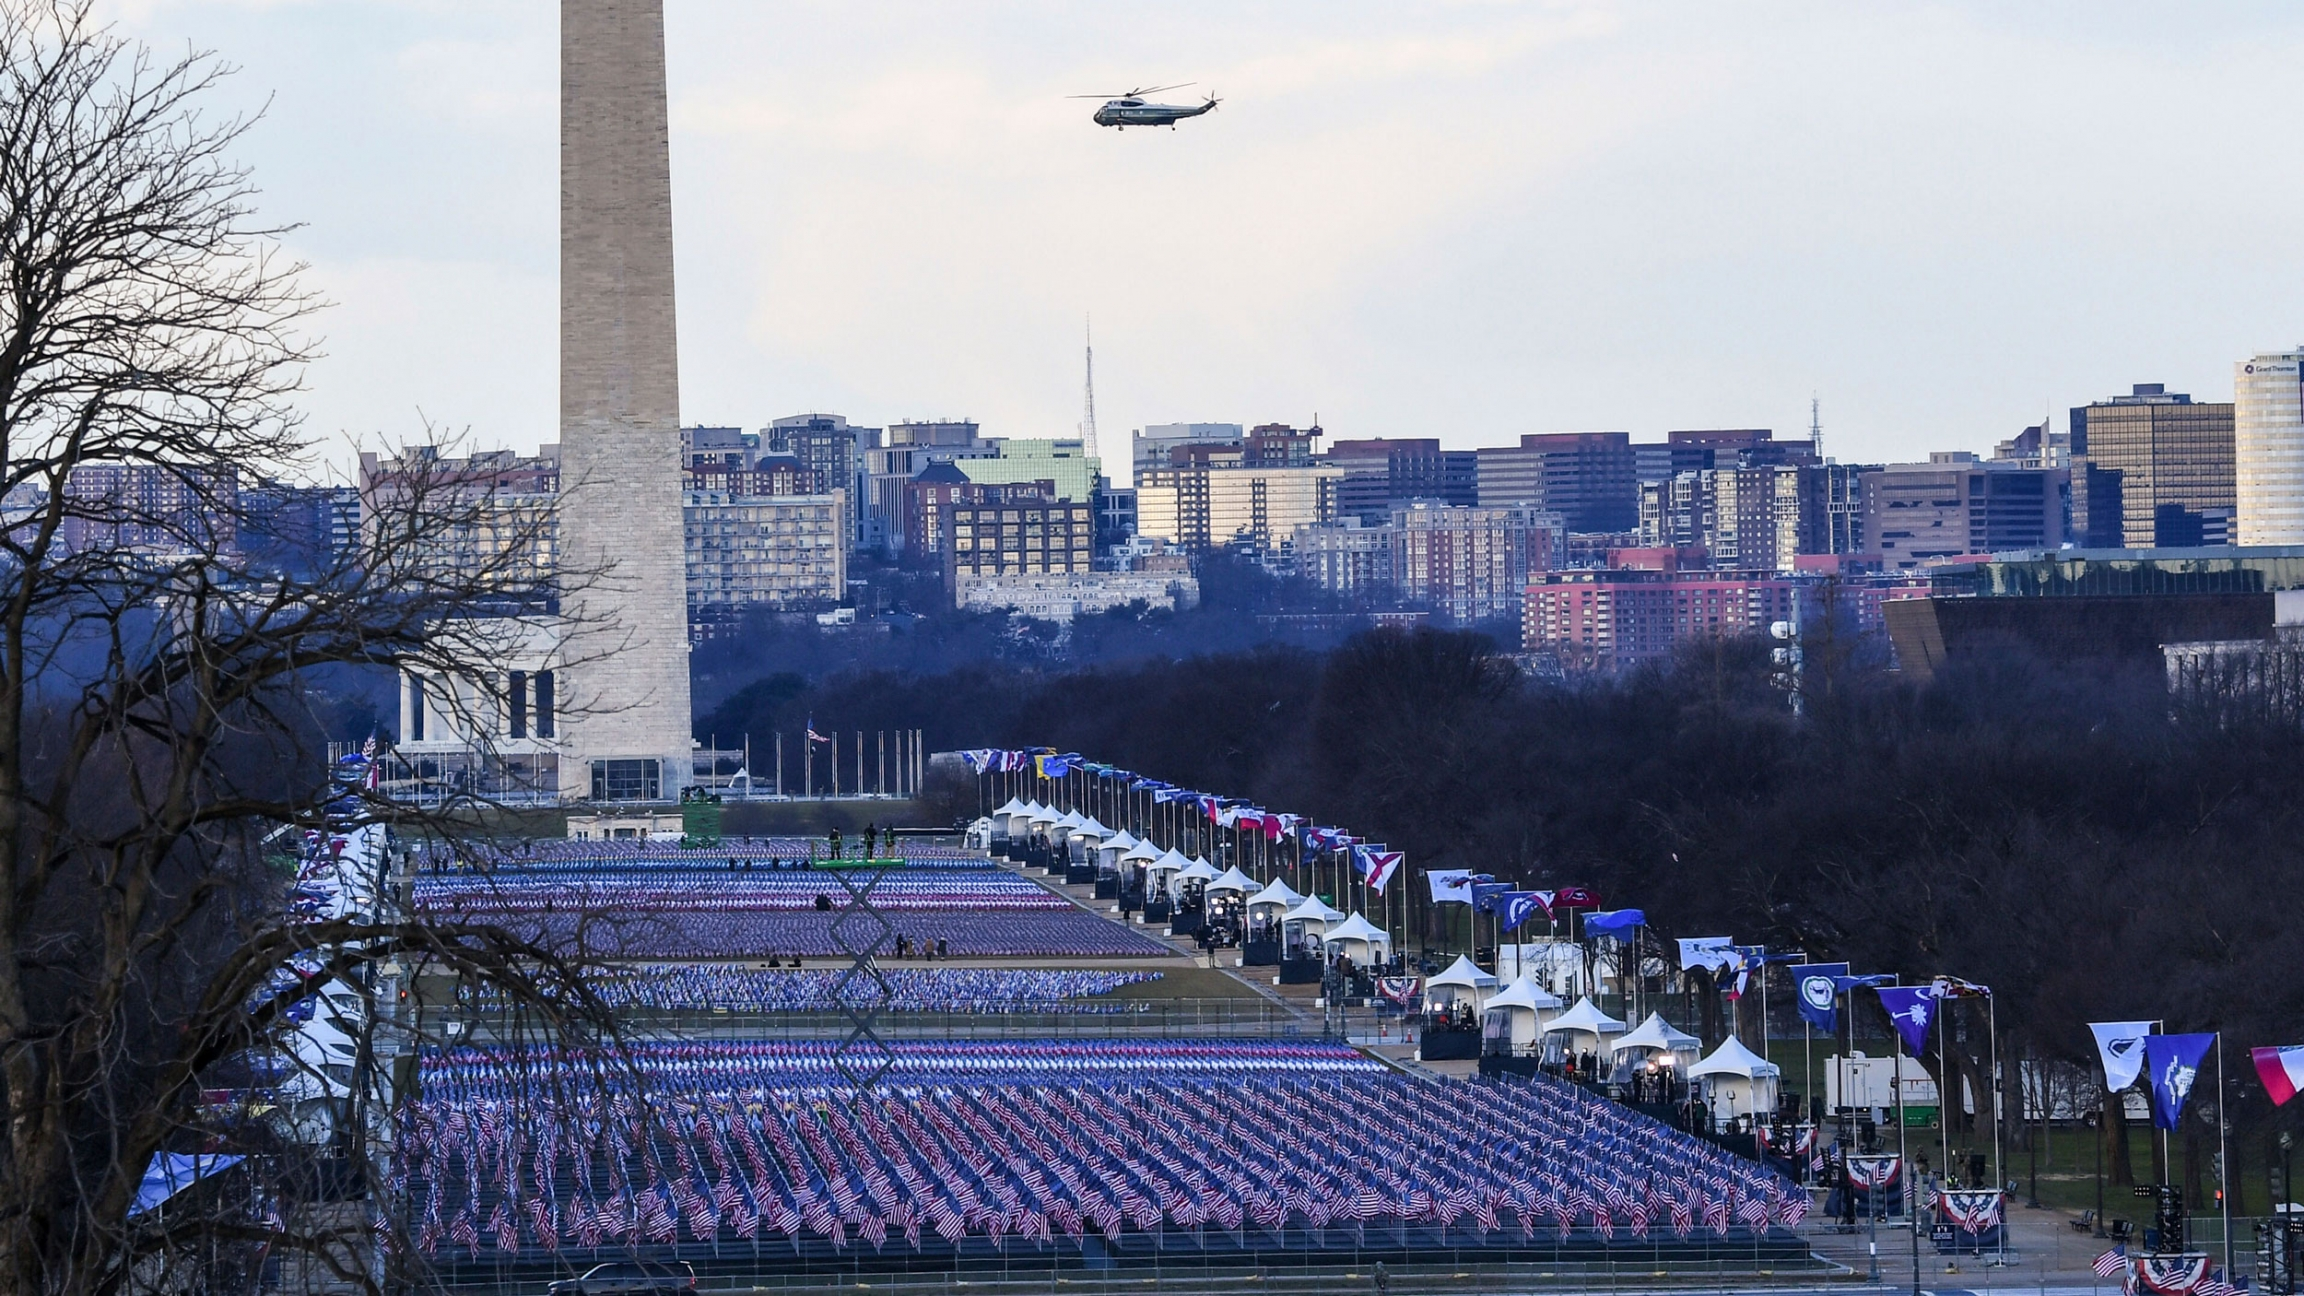 The US National Mall is shown covered in flags with the Washington Monument in the distance and the Marine One helicopter flying past.